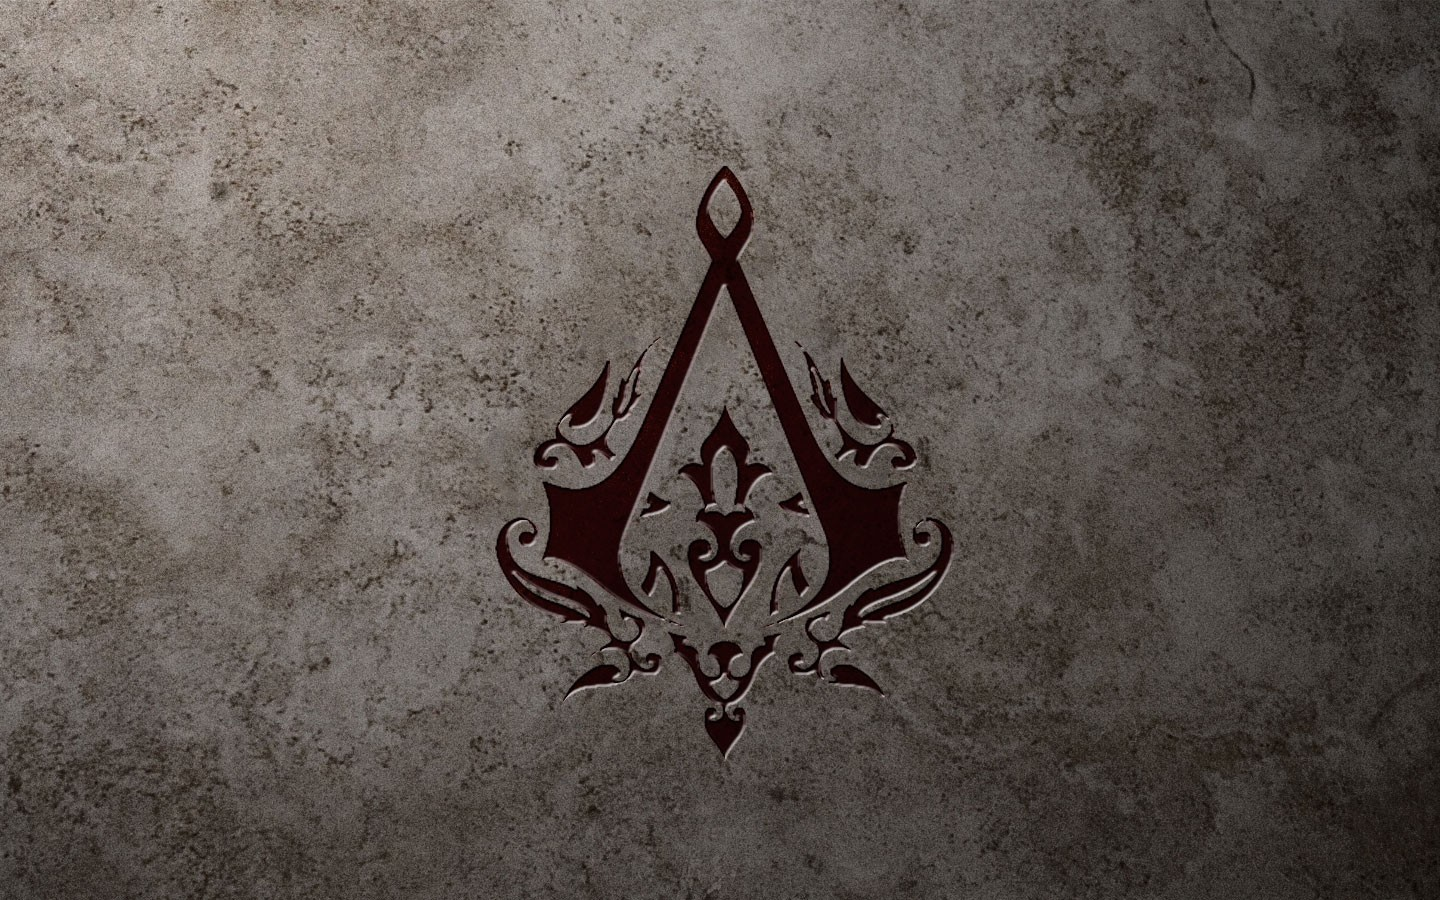 Assassins Creed Logo Wallpaper Posted By Michelle Johnson